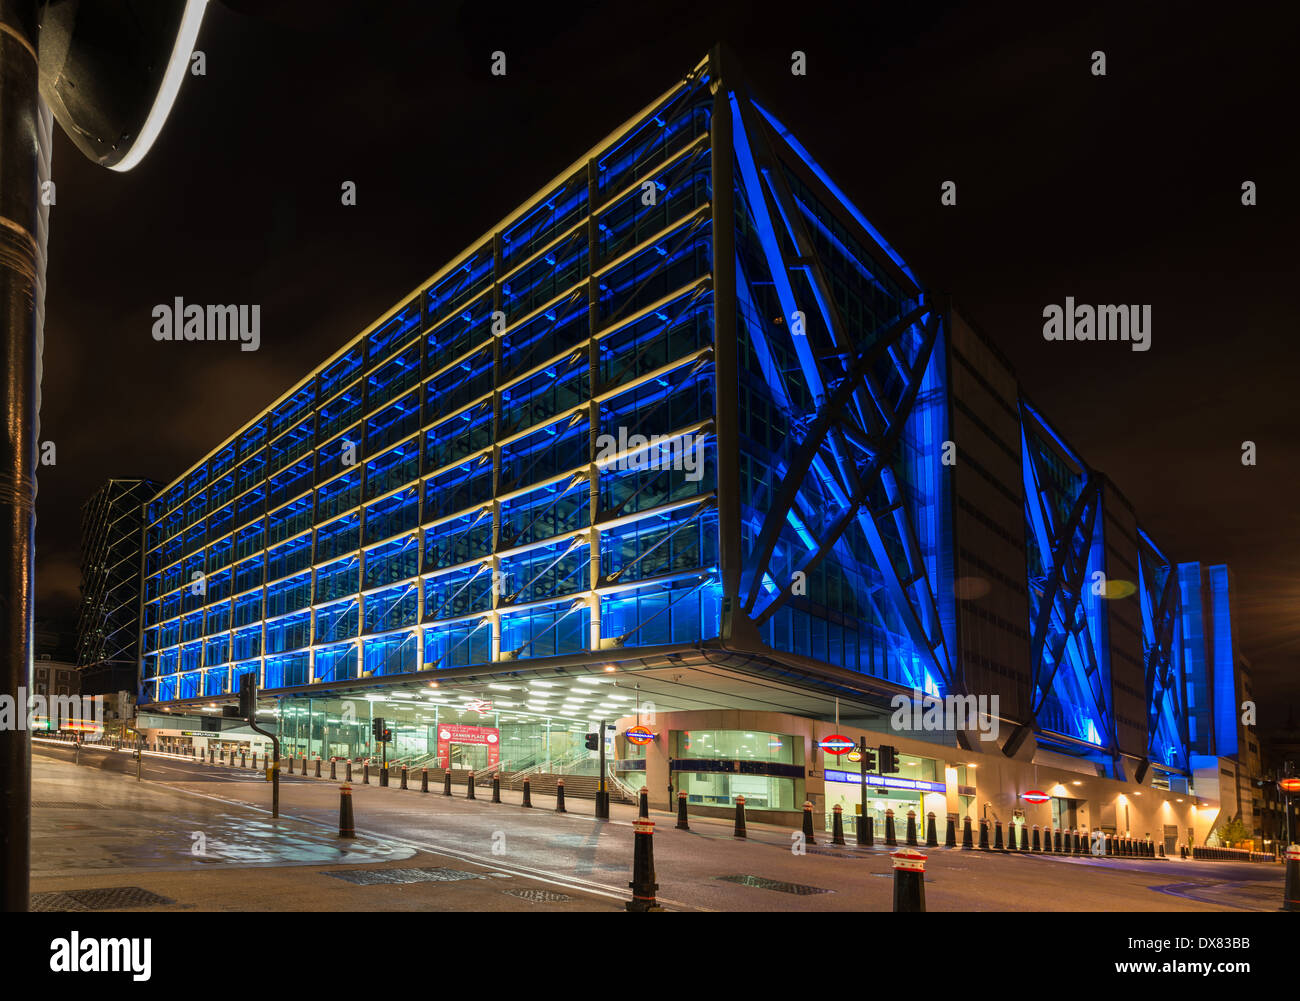 Cannon Street Station, railway terminus, London Underground and offices, at night, lit in electric blue in the City of London - Stock Image